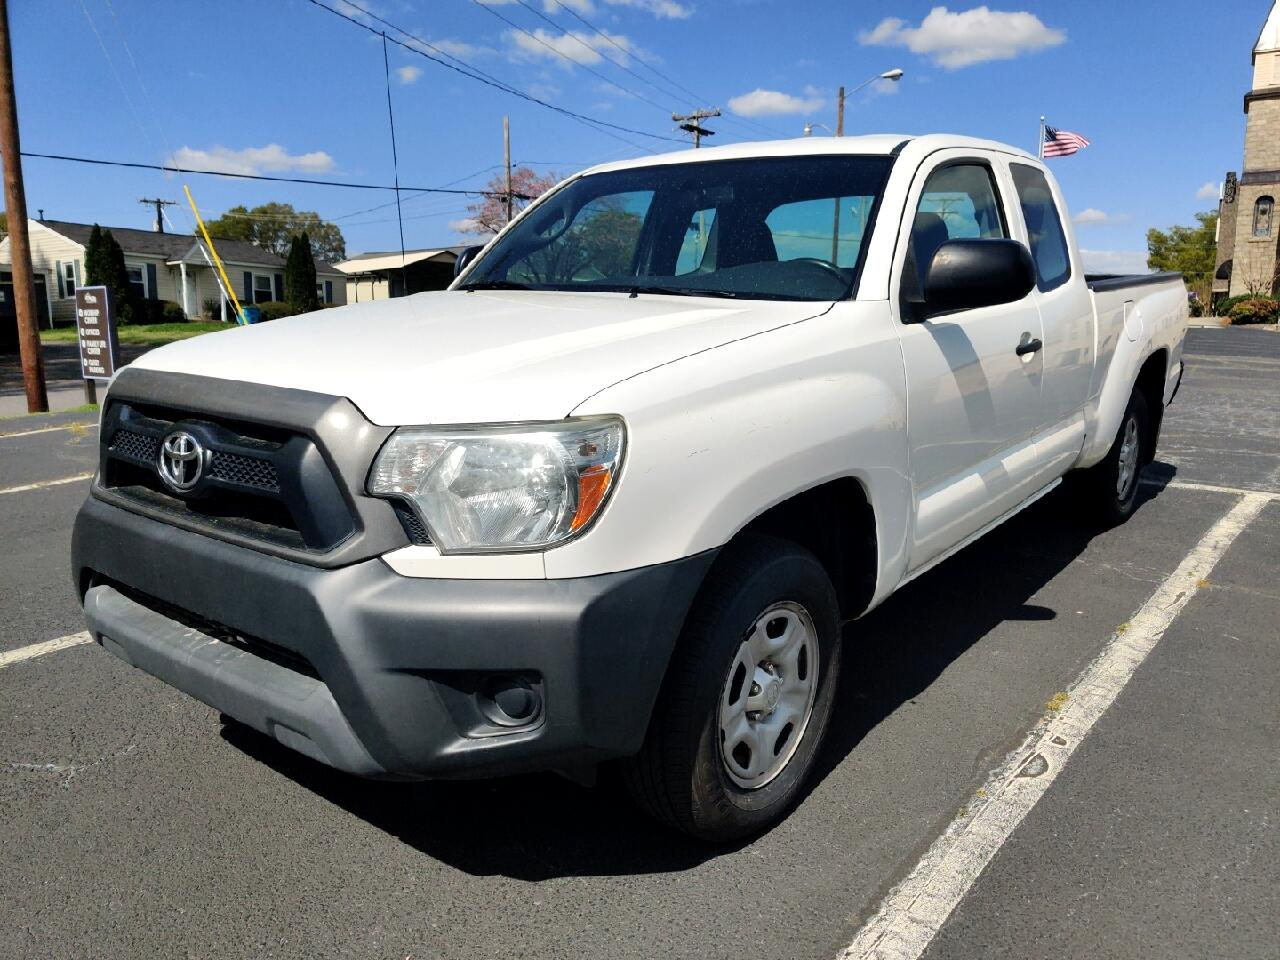 Toyota Tacoma Access Cab I4 4AT 2WD 2015